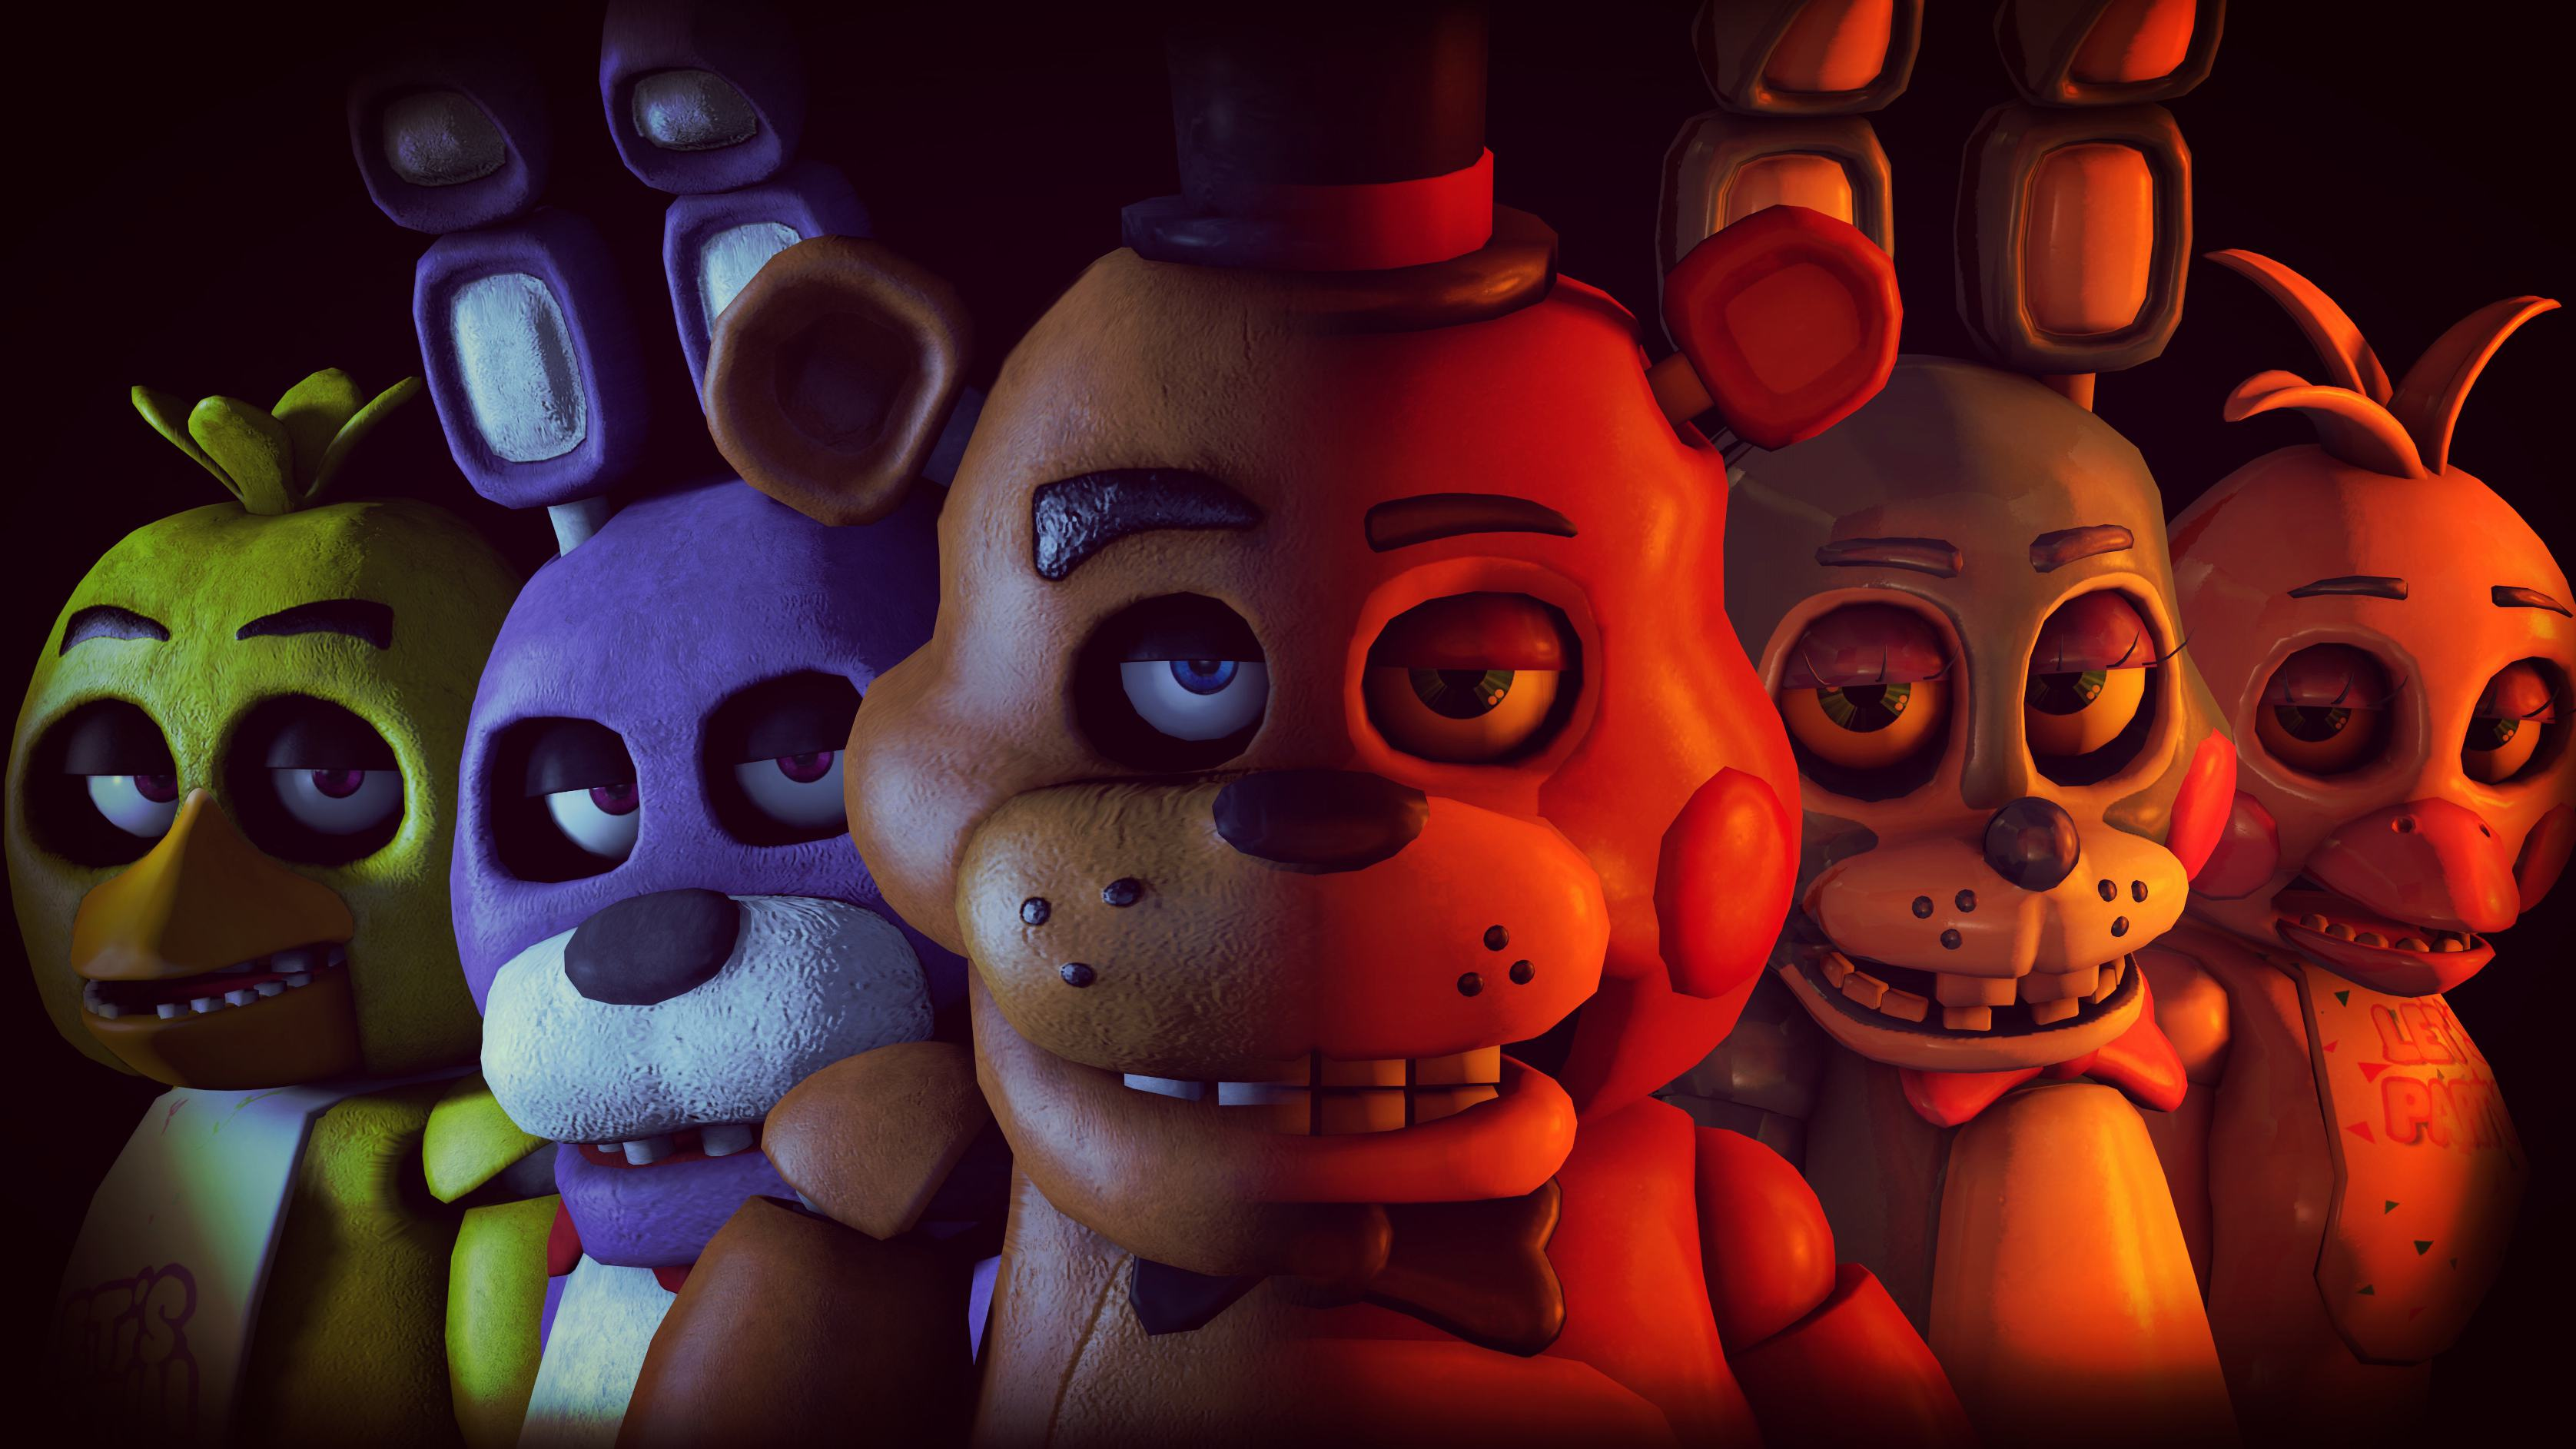 Nice Images Collection: Five Nights At Freddy's Desktop Wallpapers